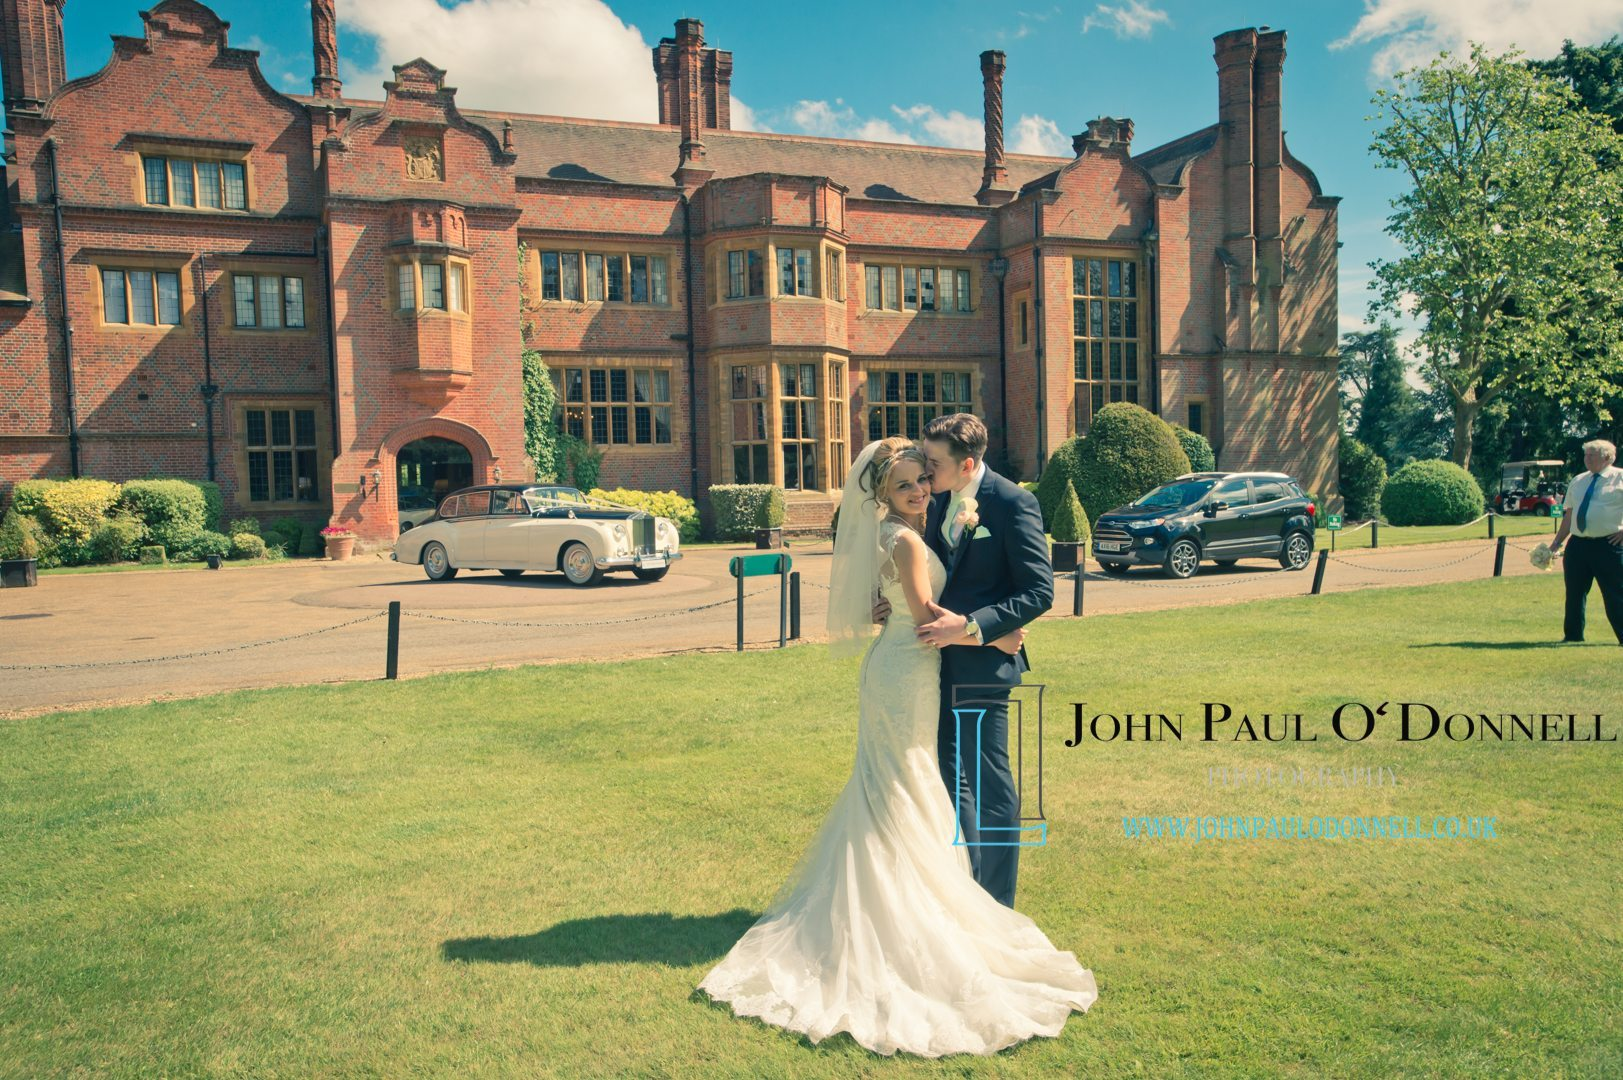 Hanbury Manor & Spa Wedding Venue Review - Hanbury Manor Wedding Photographer